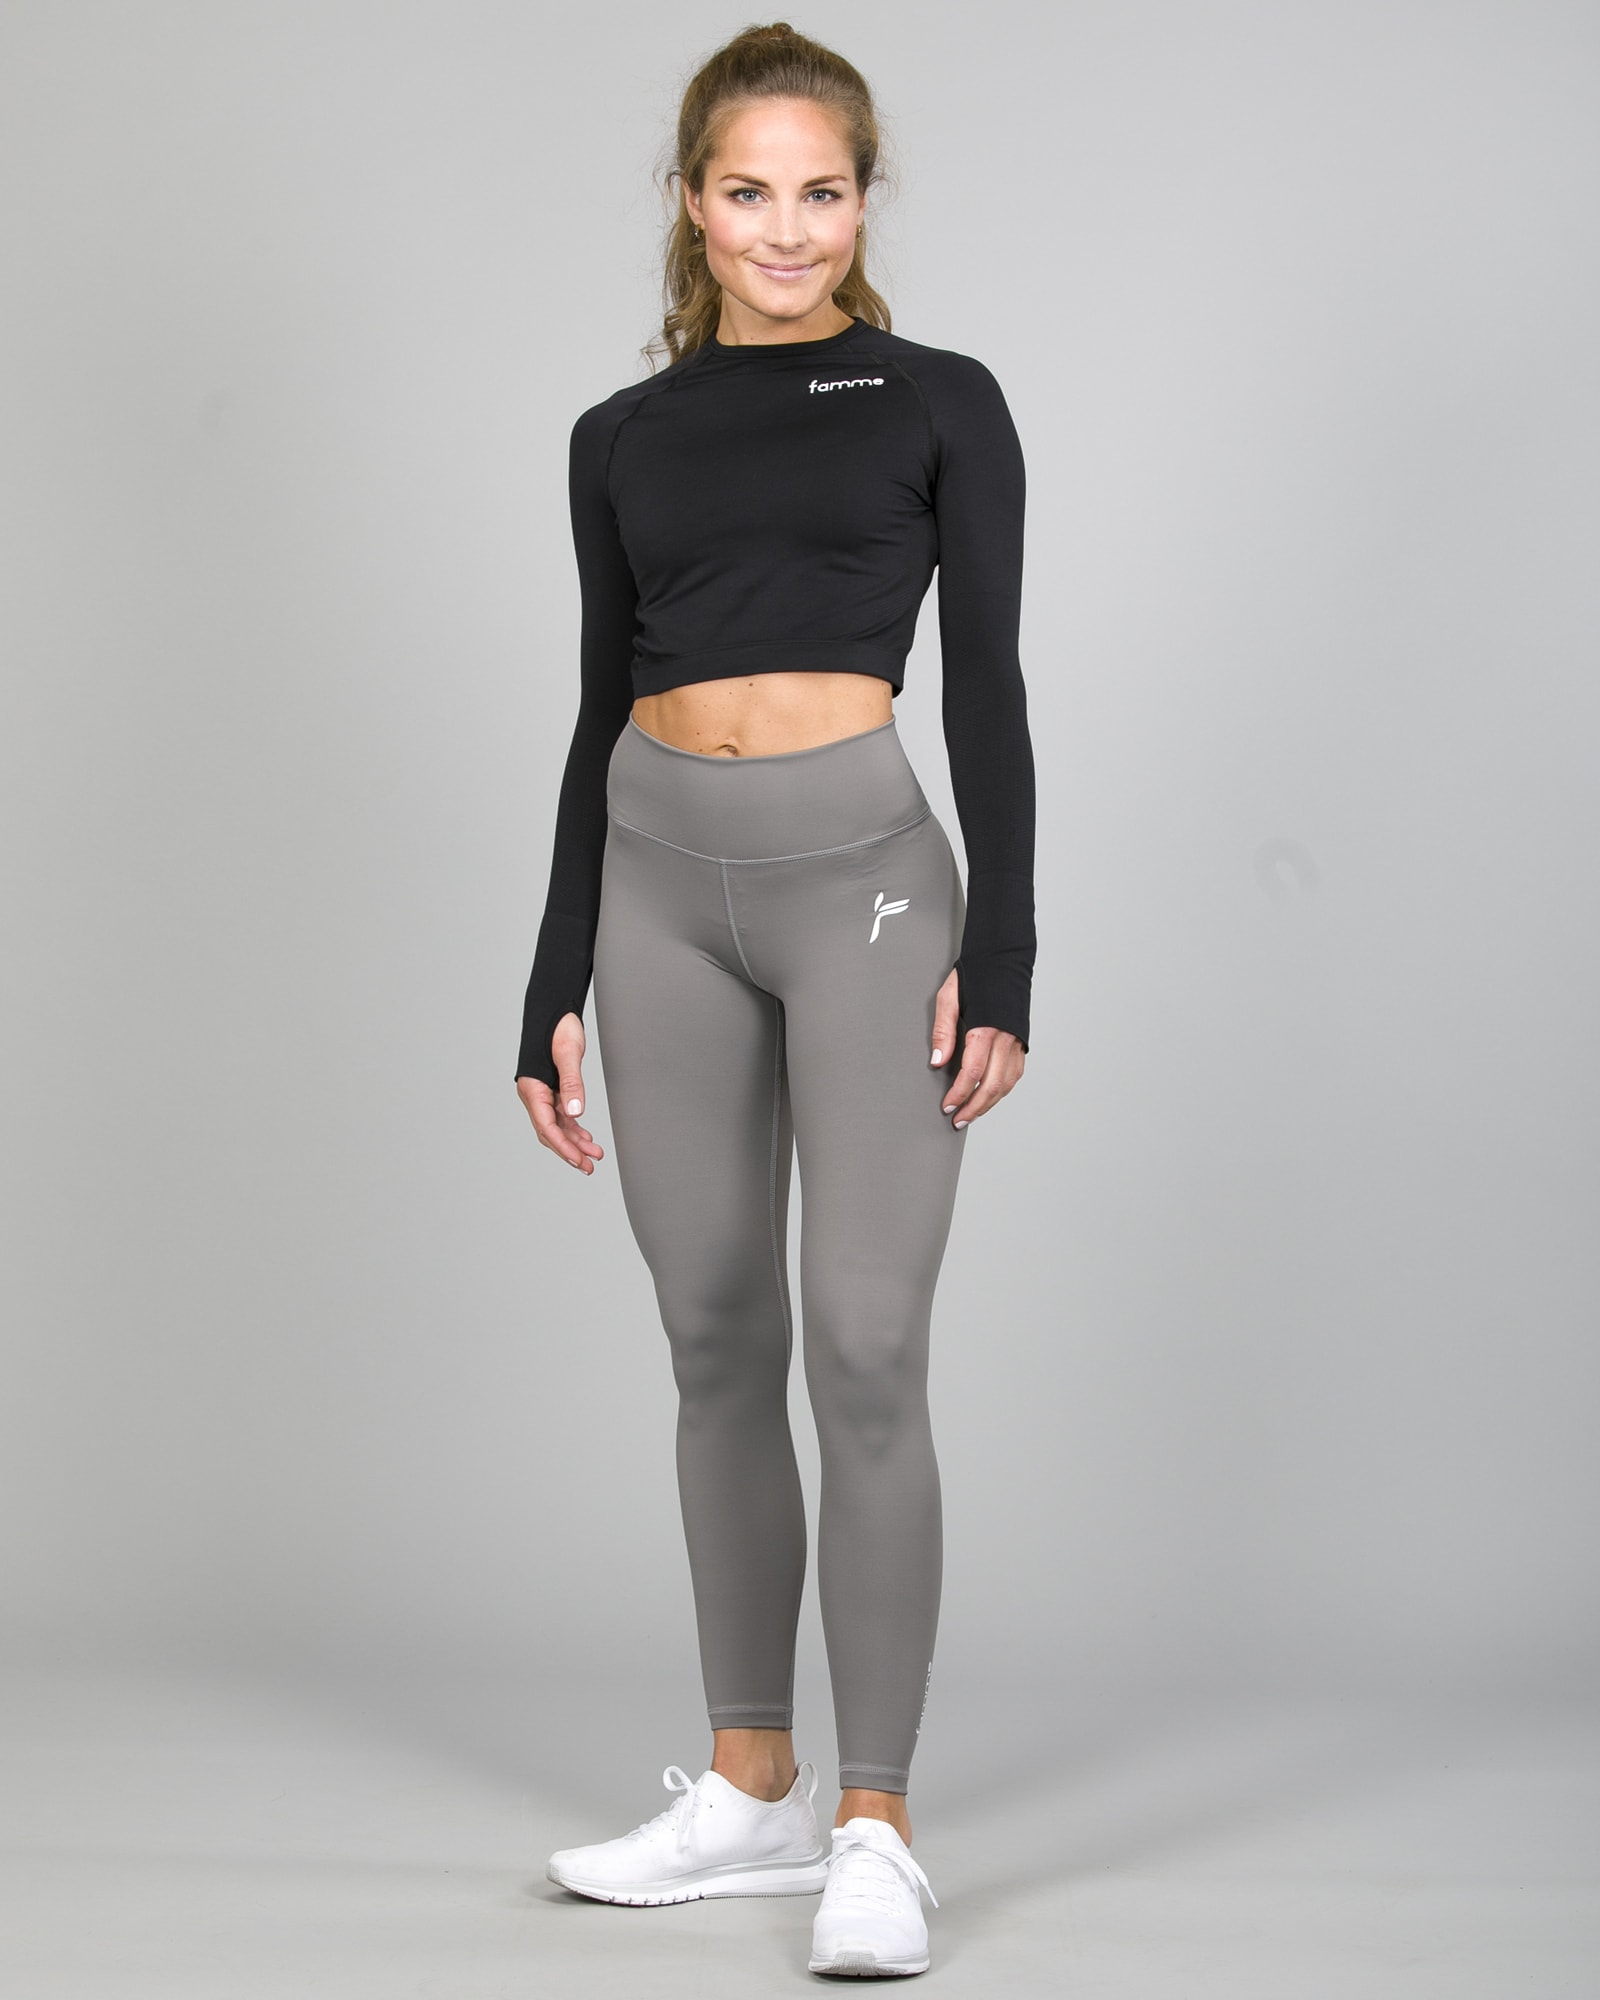 Famme Ocean Crop Top Black ocls-bk and Essential High Waist Legging - Grey ehwt-gr